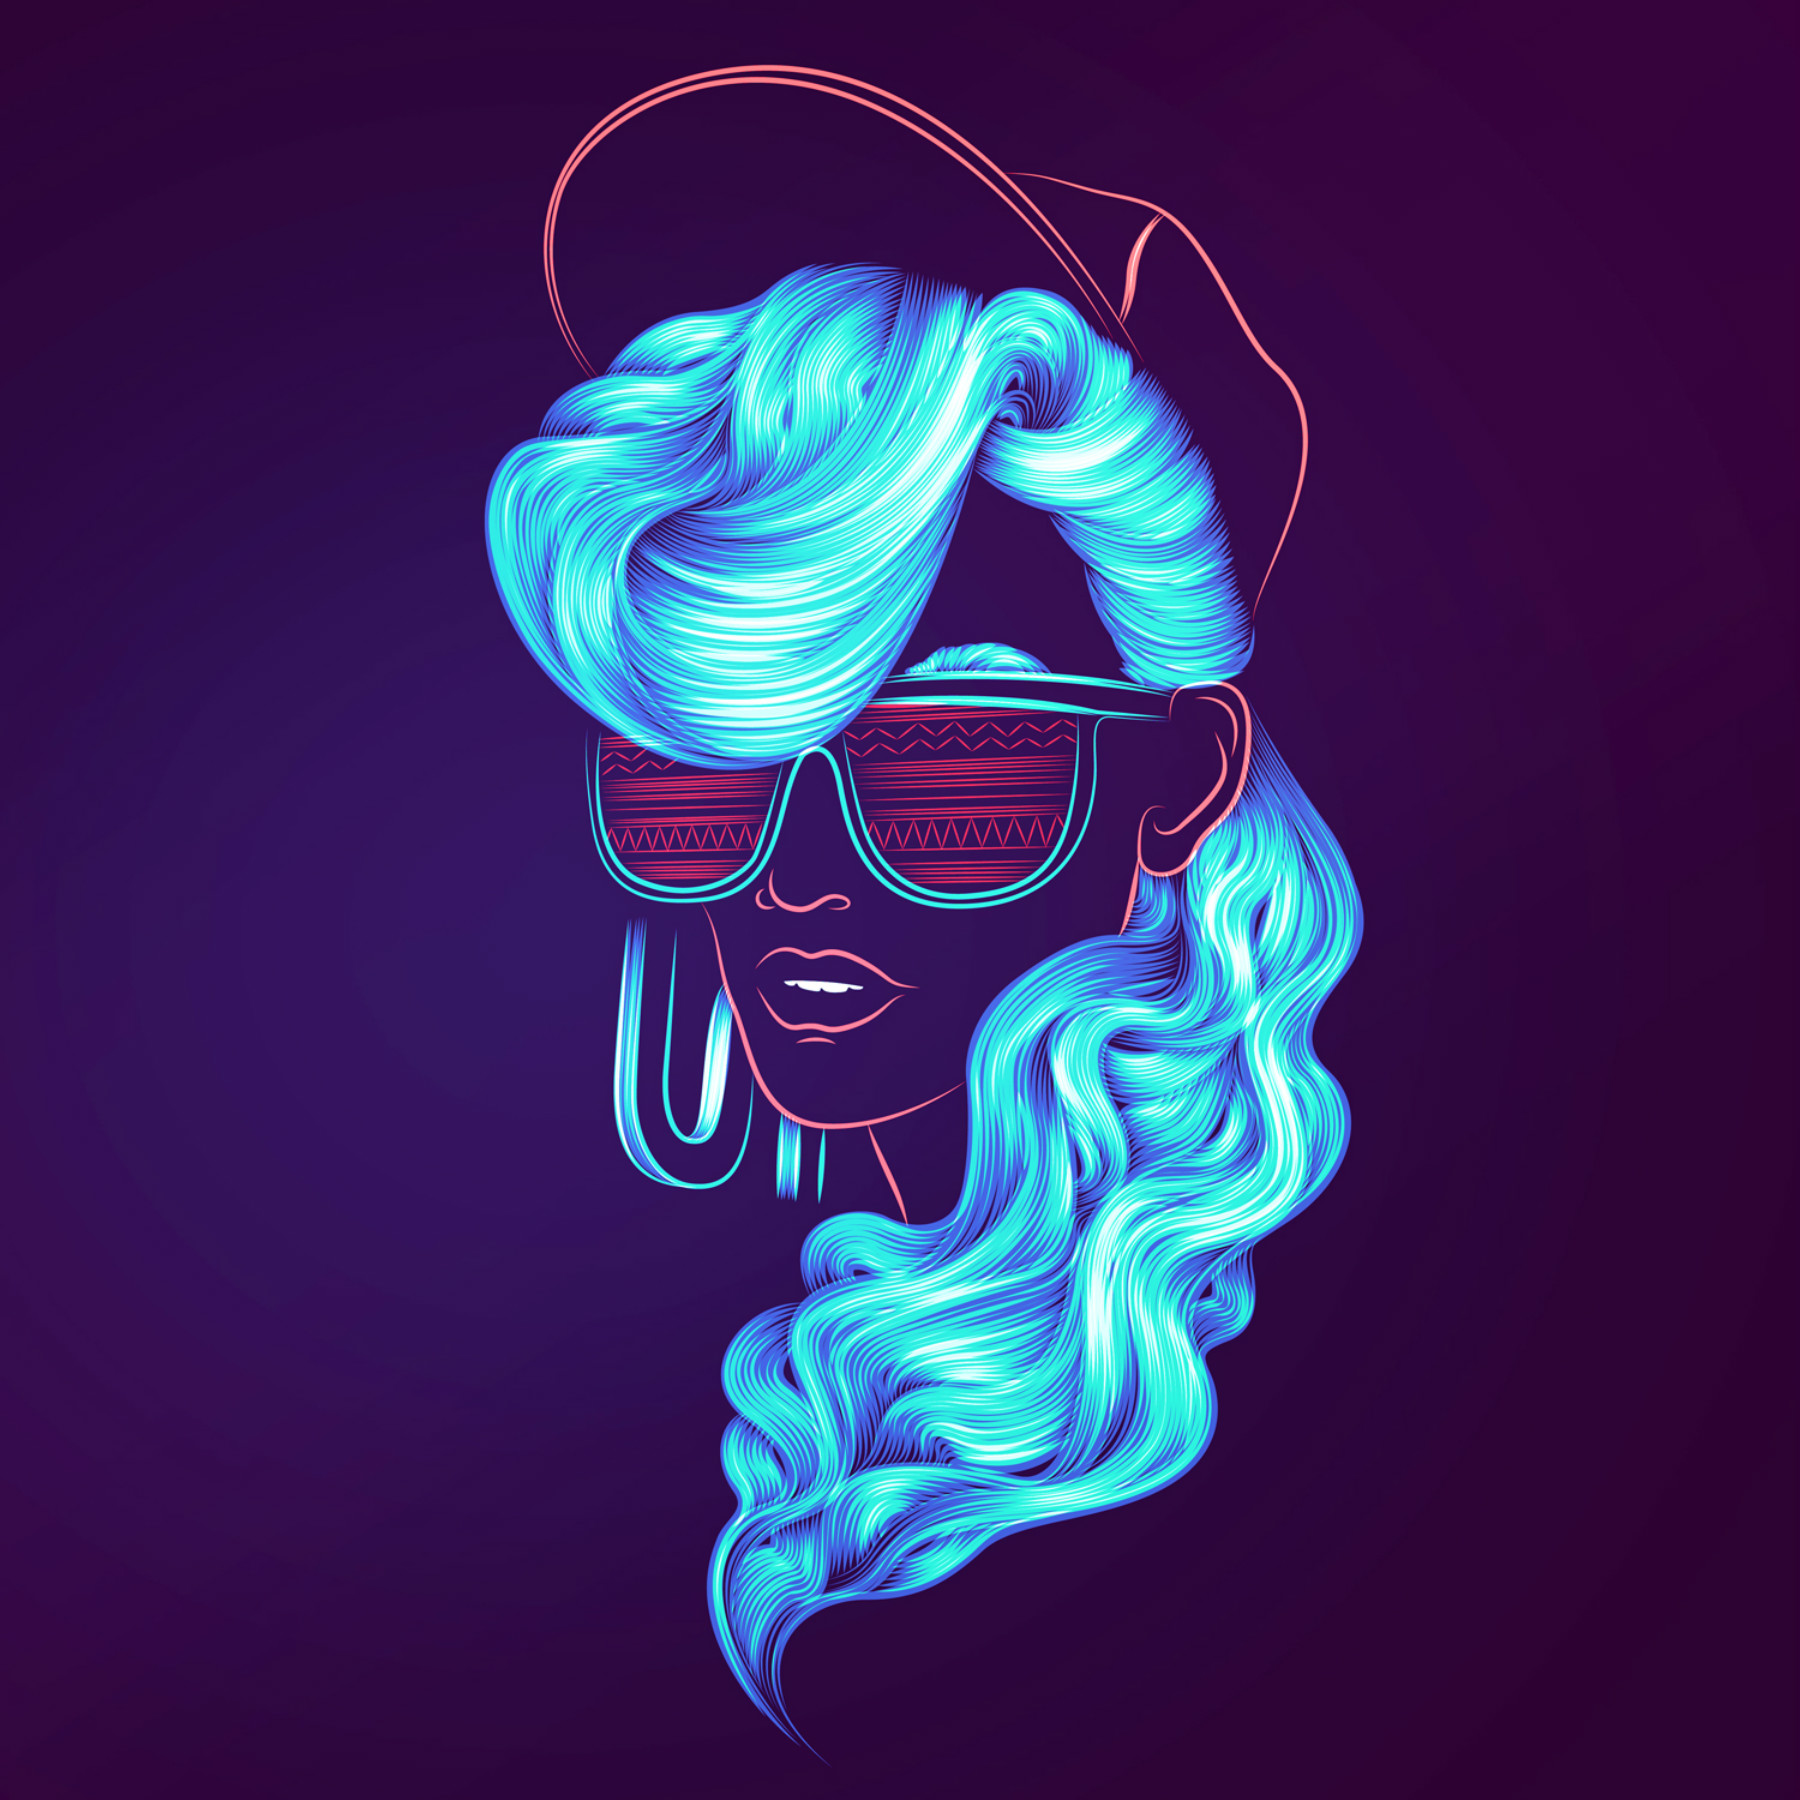 Digital Portraits in Electric Colours